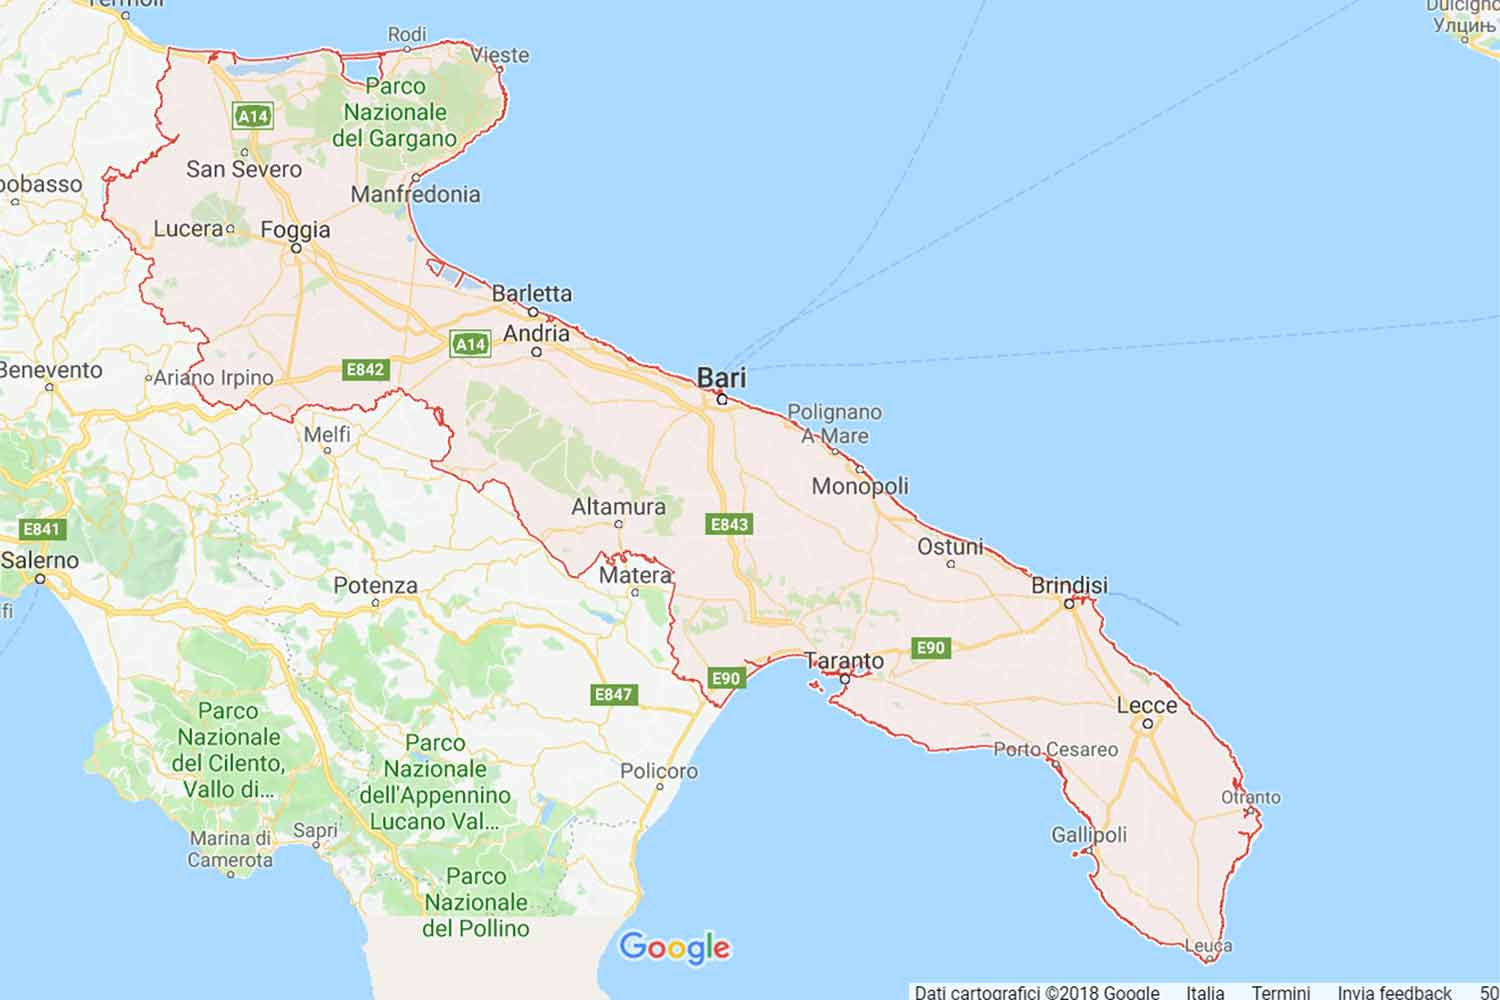 Puglia - Bari - Cellamare Preventivi Veloci google maps